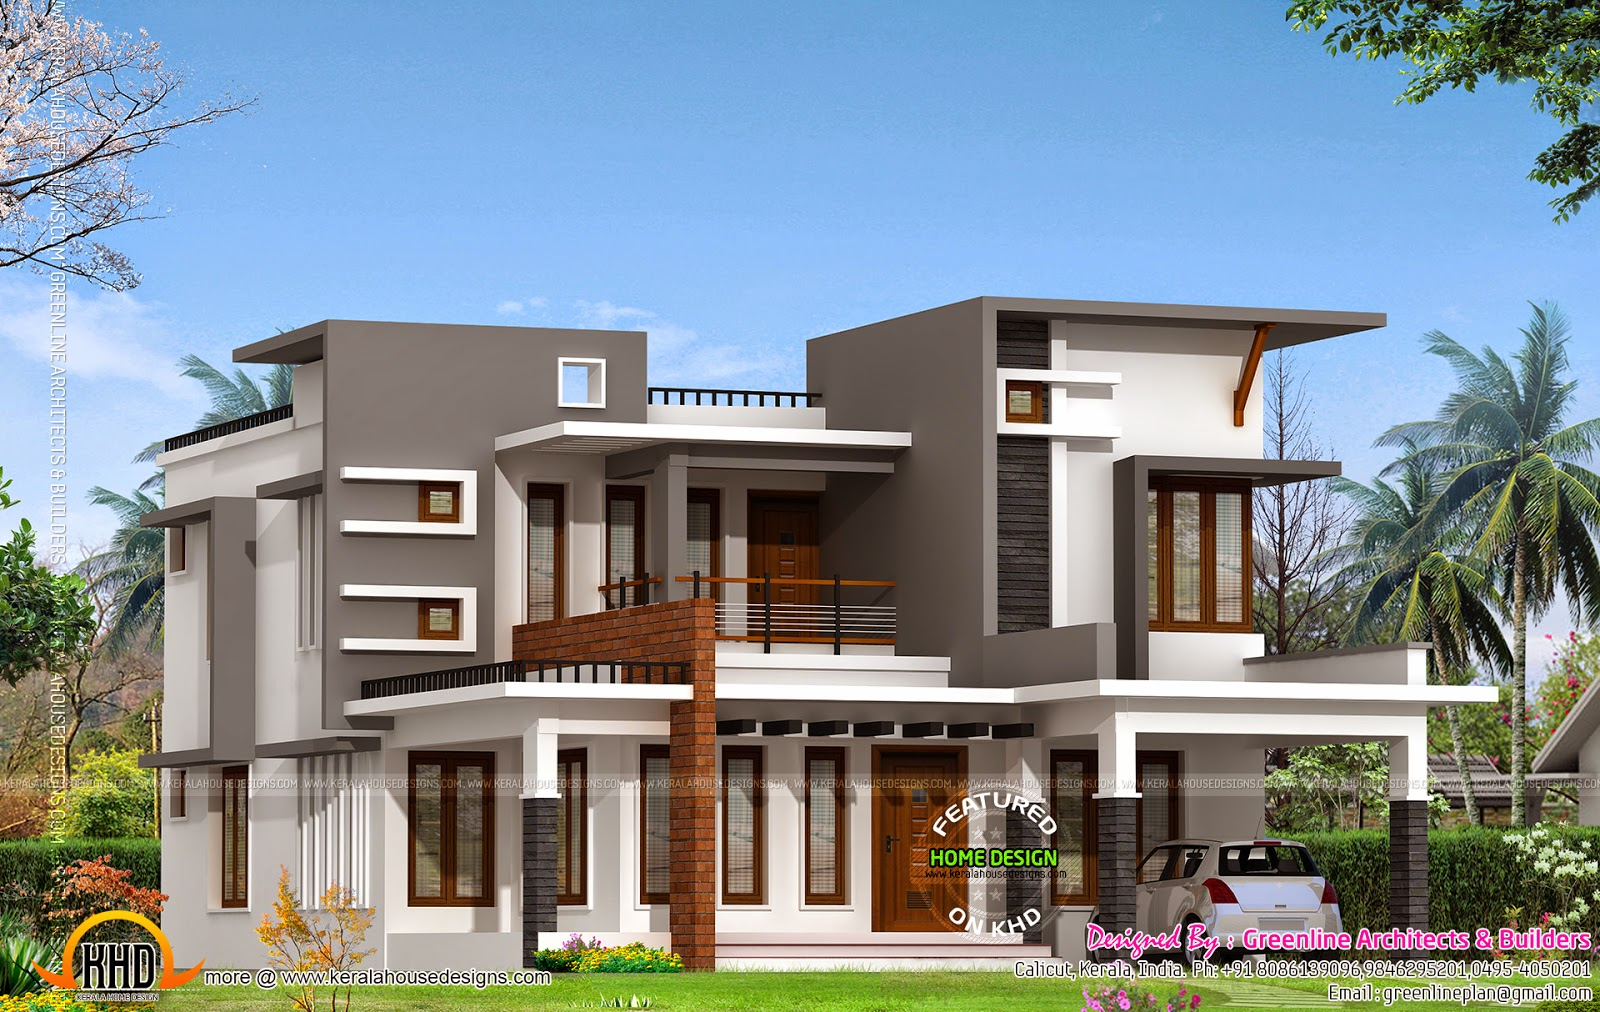 Contemporary house with estimate cost 28 lakhs kerala for House design and estimate cost